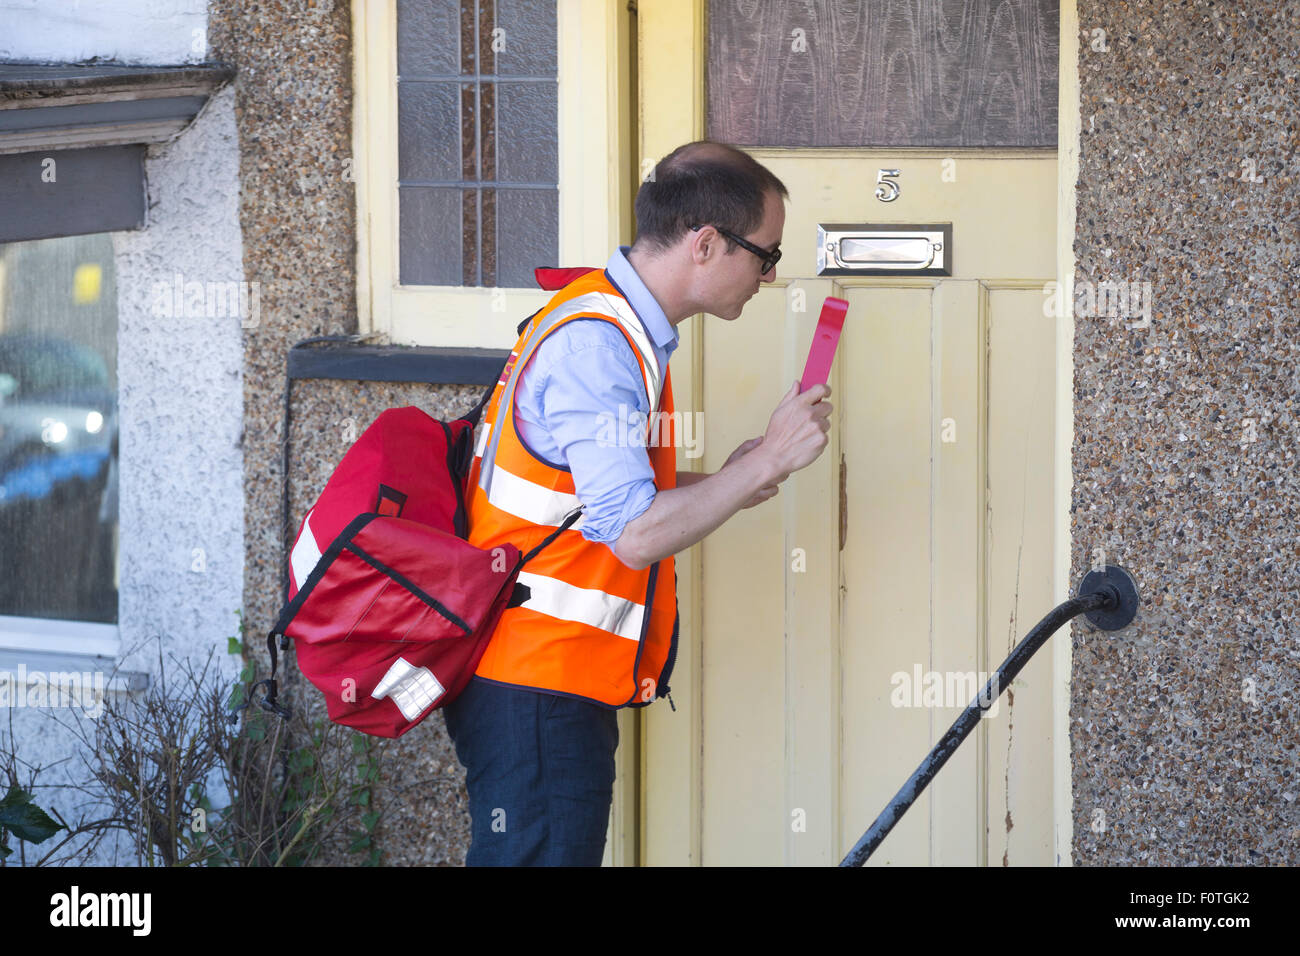 Royal Mail Postman Making A Delivery Using The Anti Dog